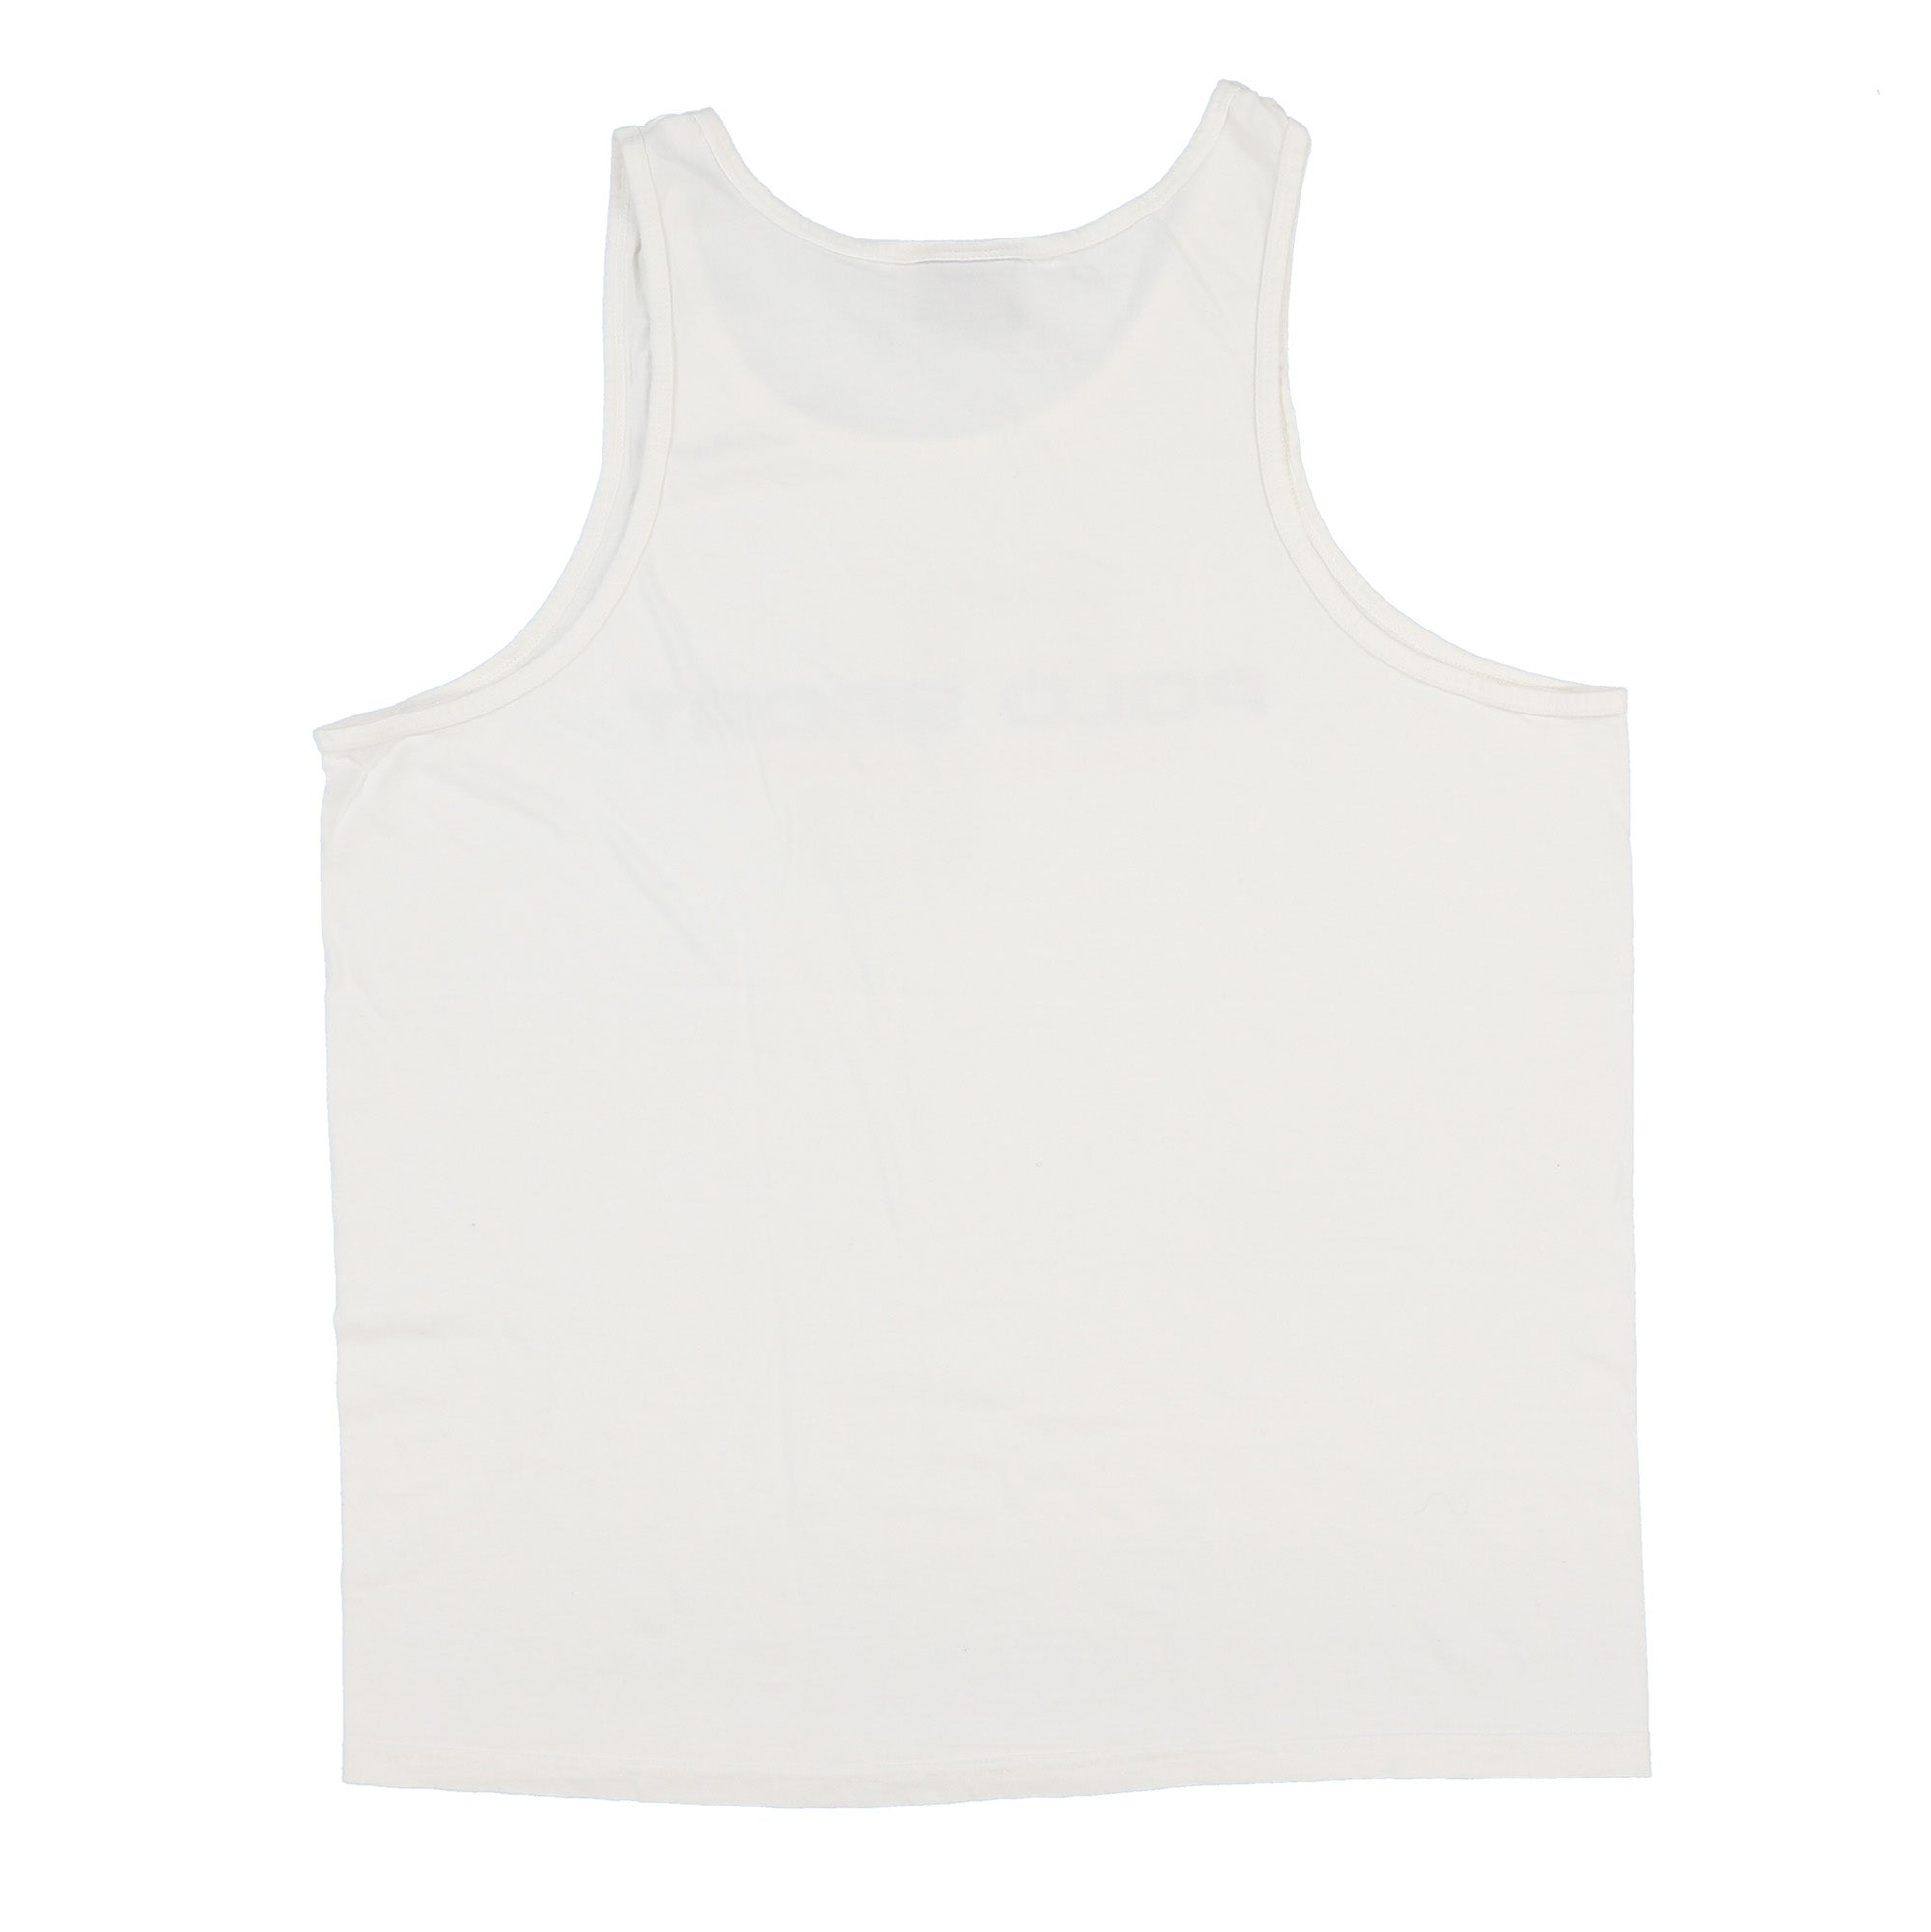 POLO SPORT PSRL SPELL OUT TANK TOP // WHITE